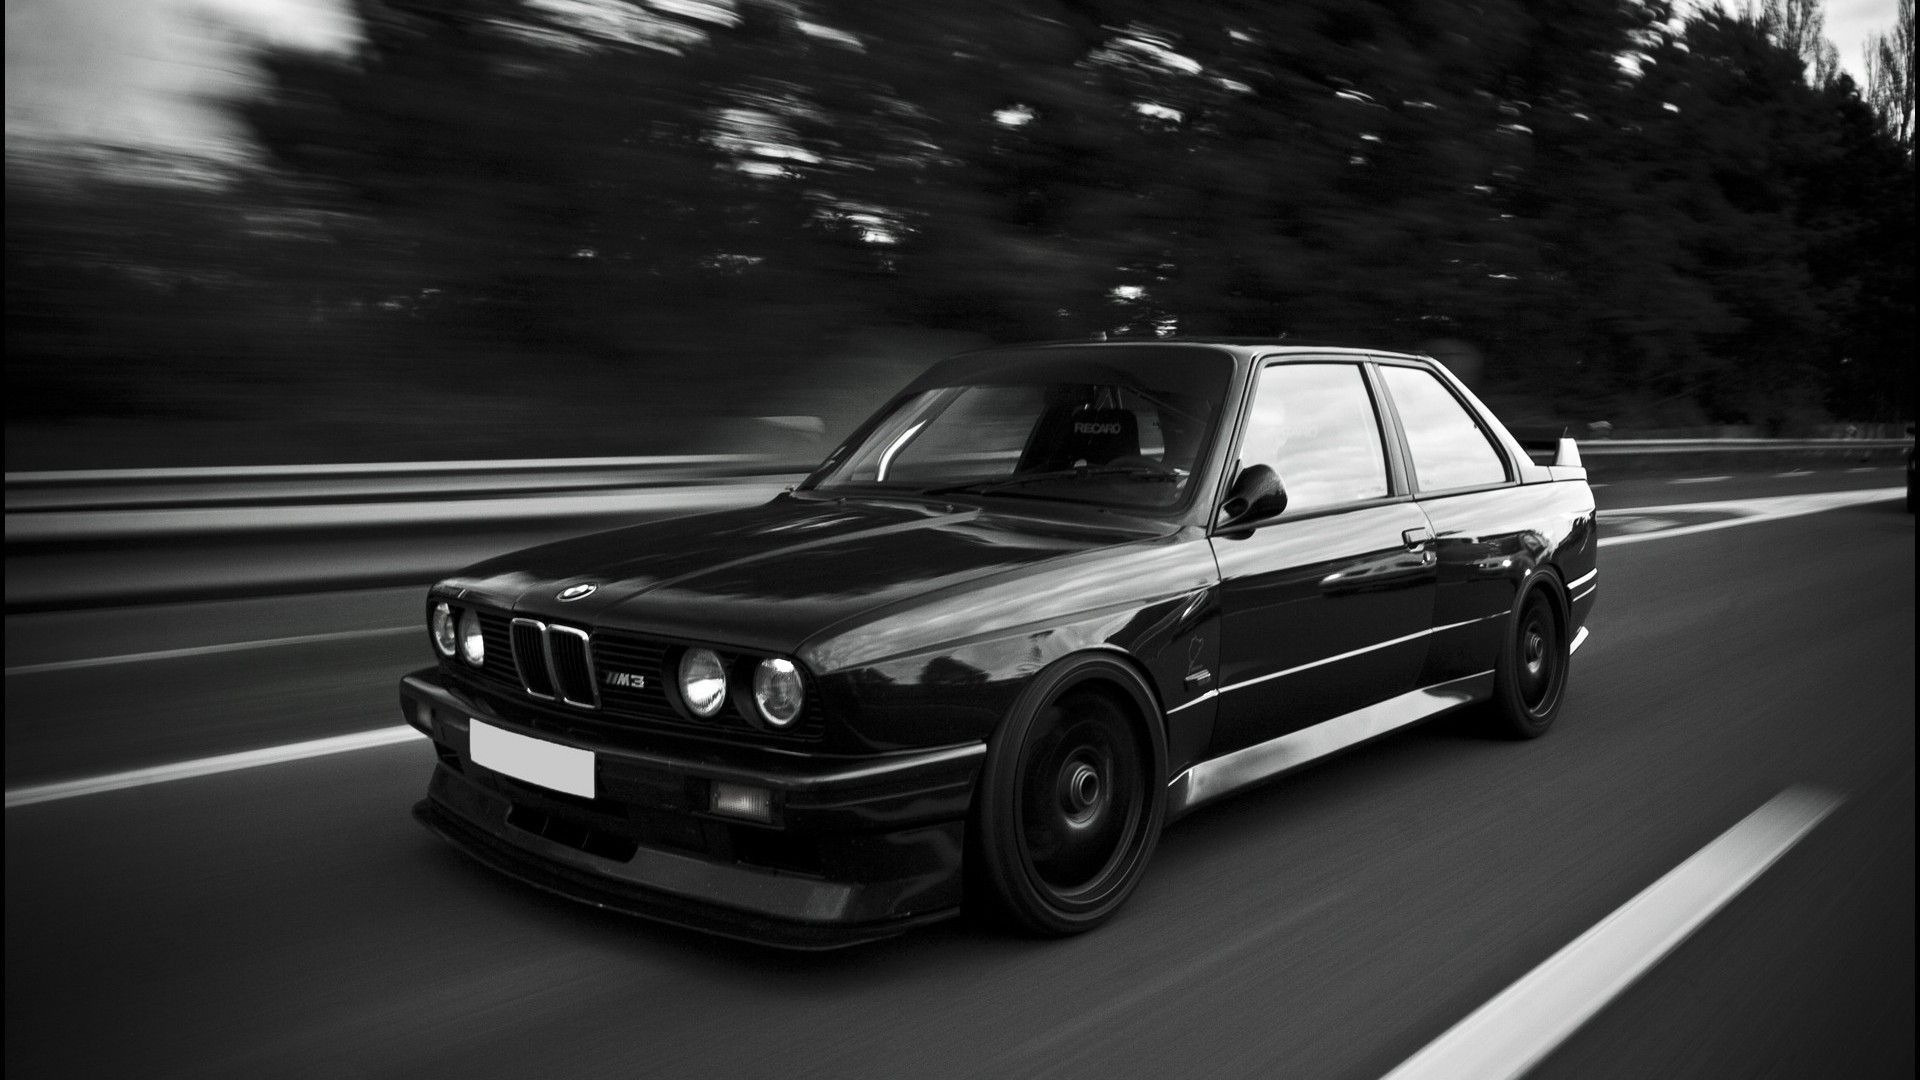 Bmw E30 Wallpaper 05 1920x1080